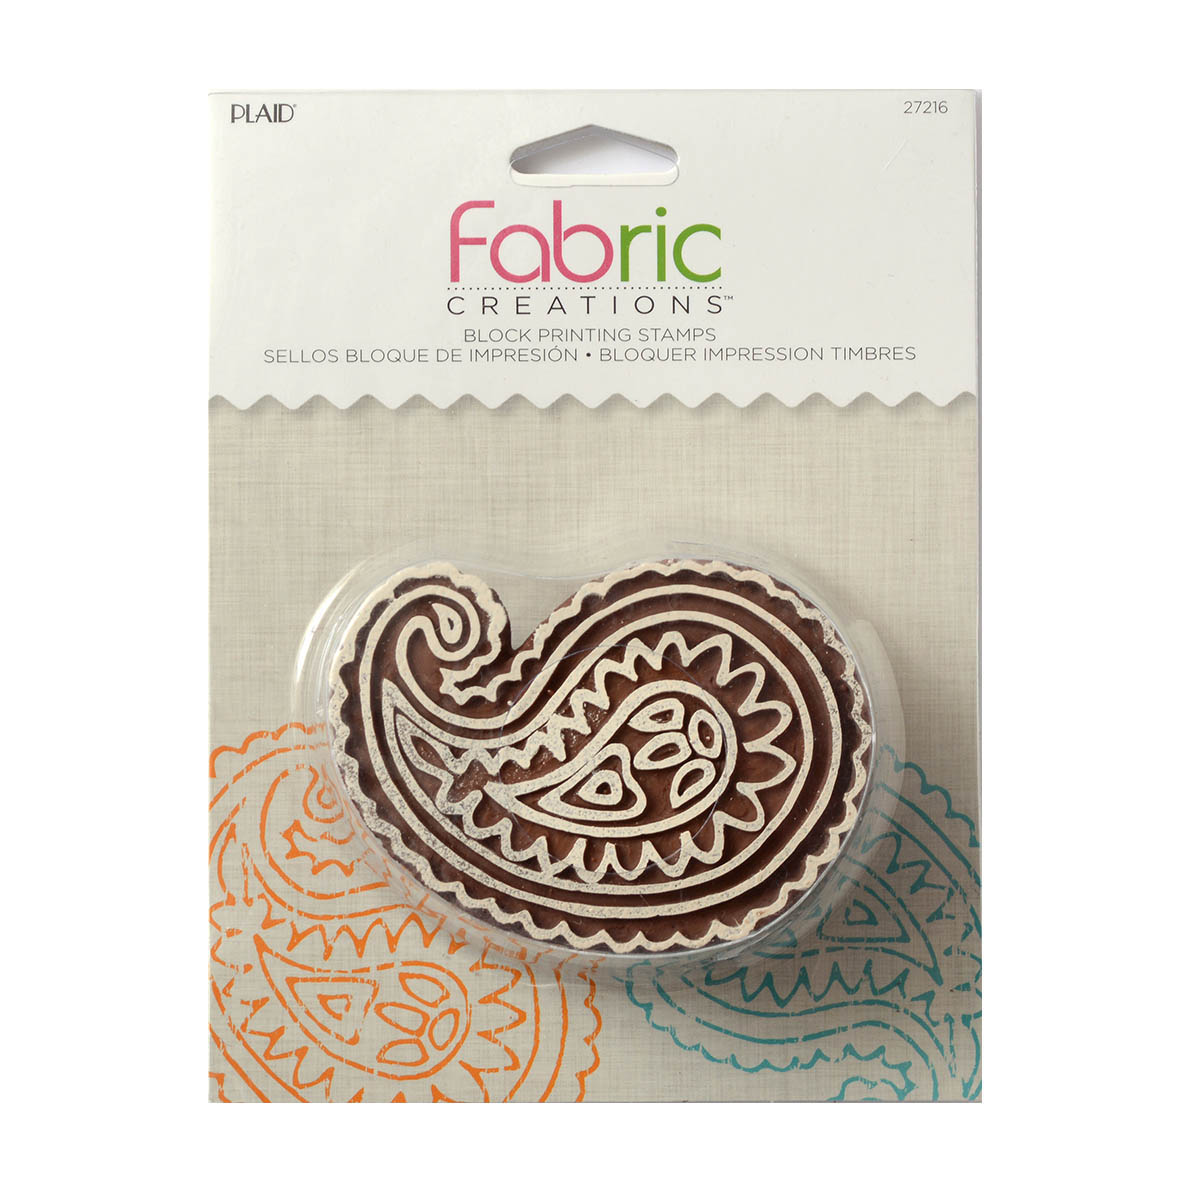 Fabric Creations™ Block Printing Stamps - Medium - Paisley